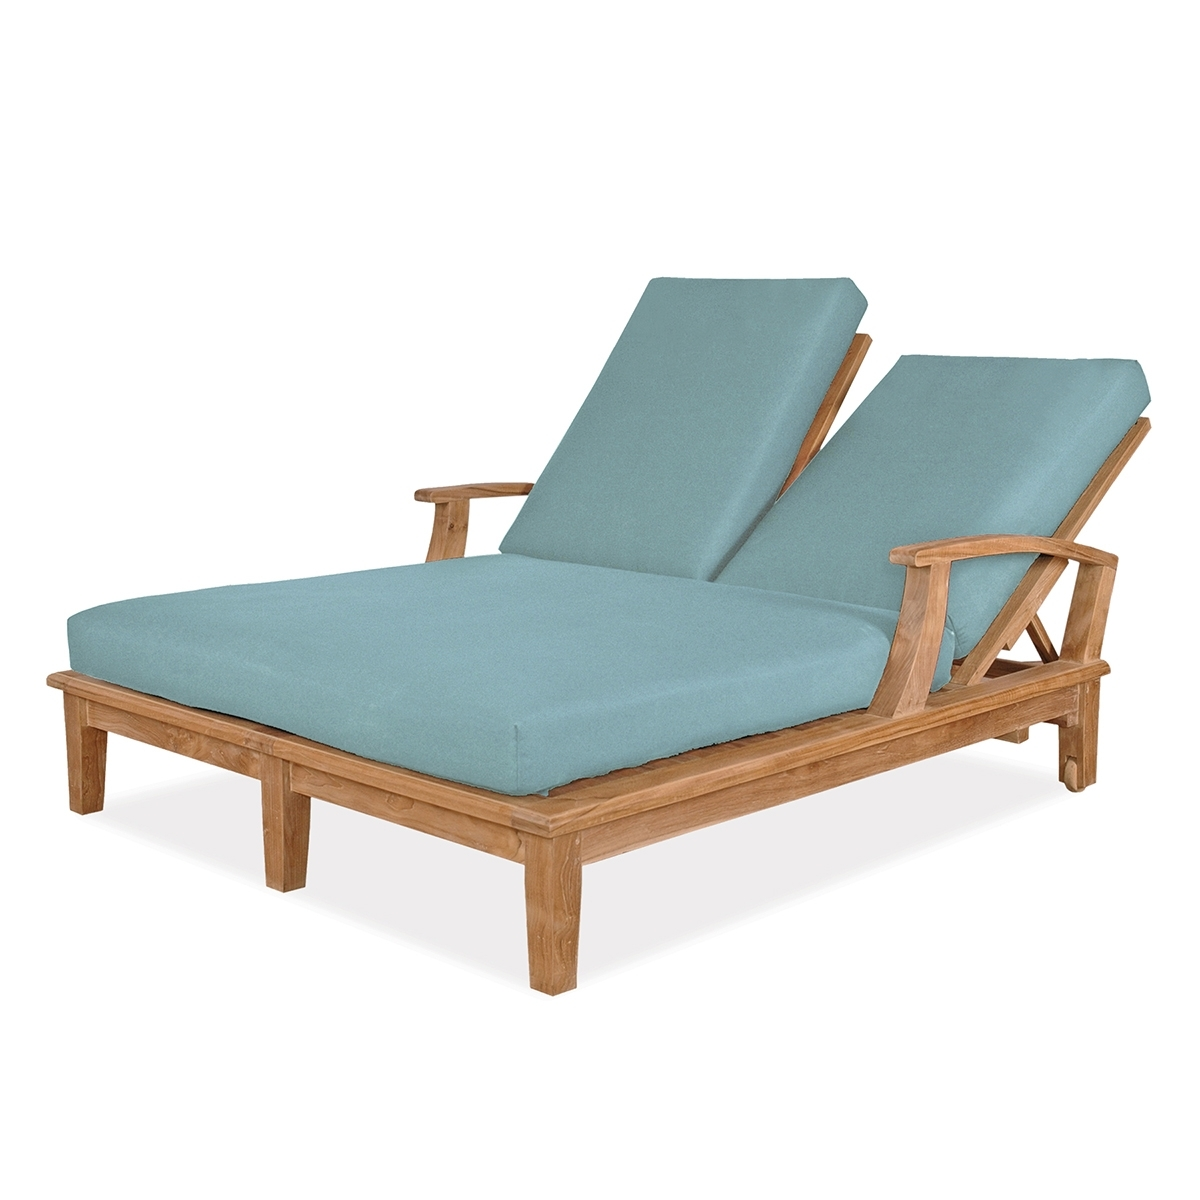 Teak Chaises Intended For Most Up To Date Double Chaise Lounge (View 3 of 15)